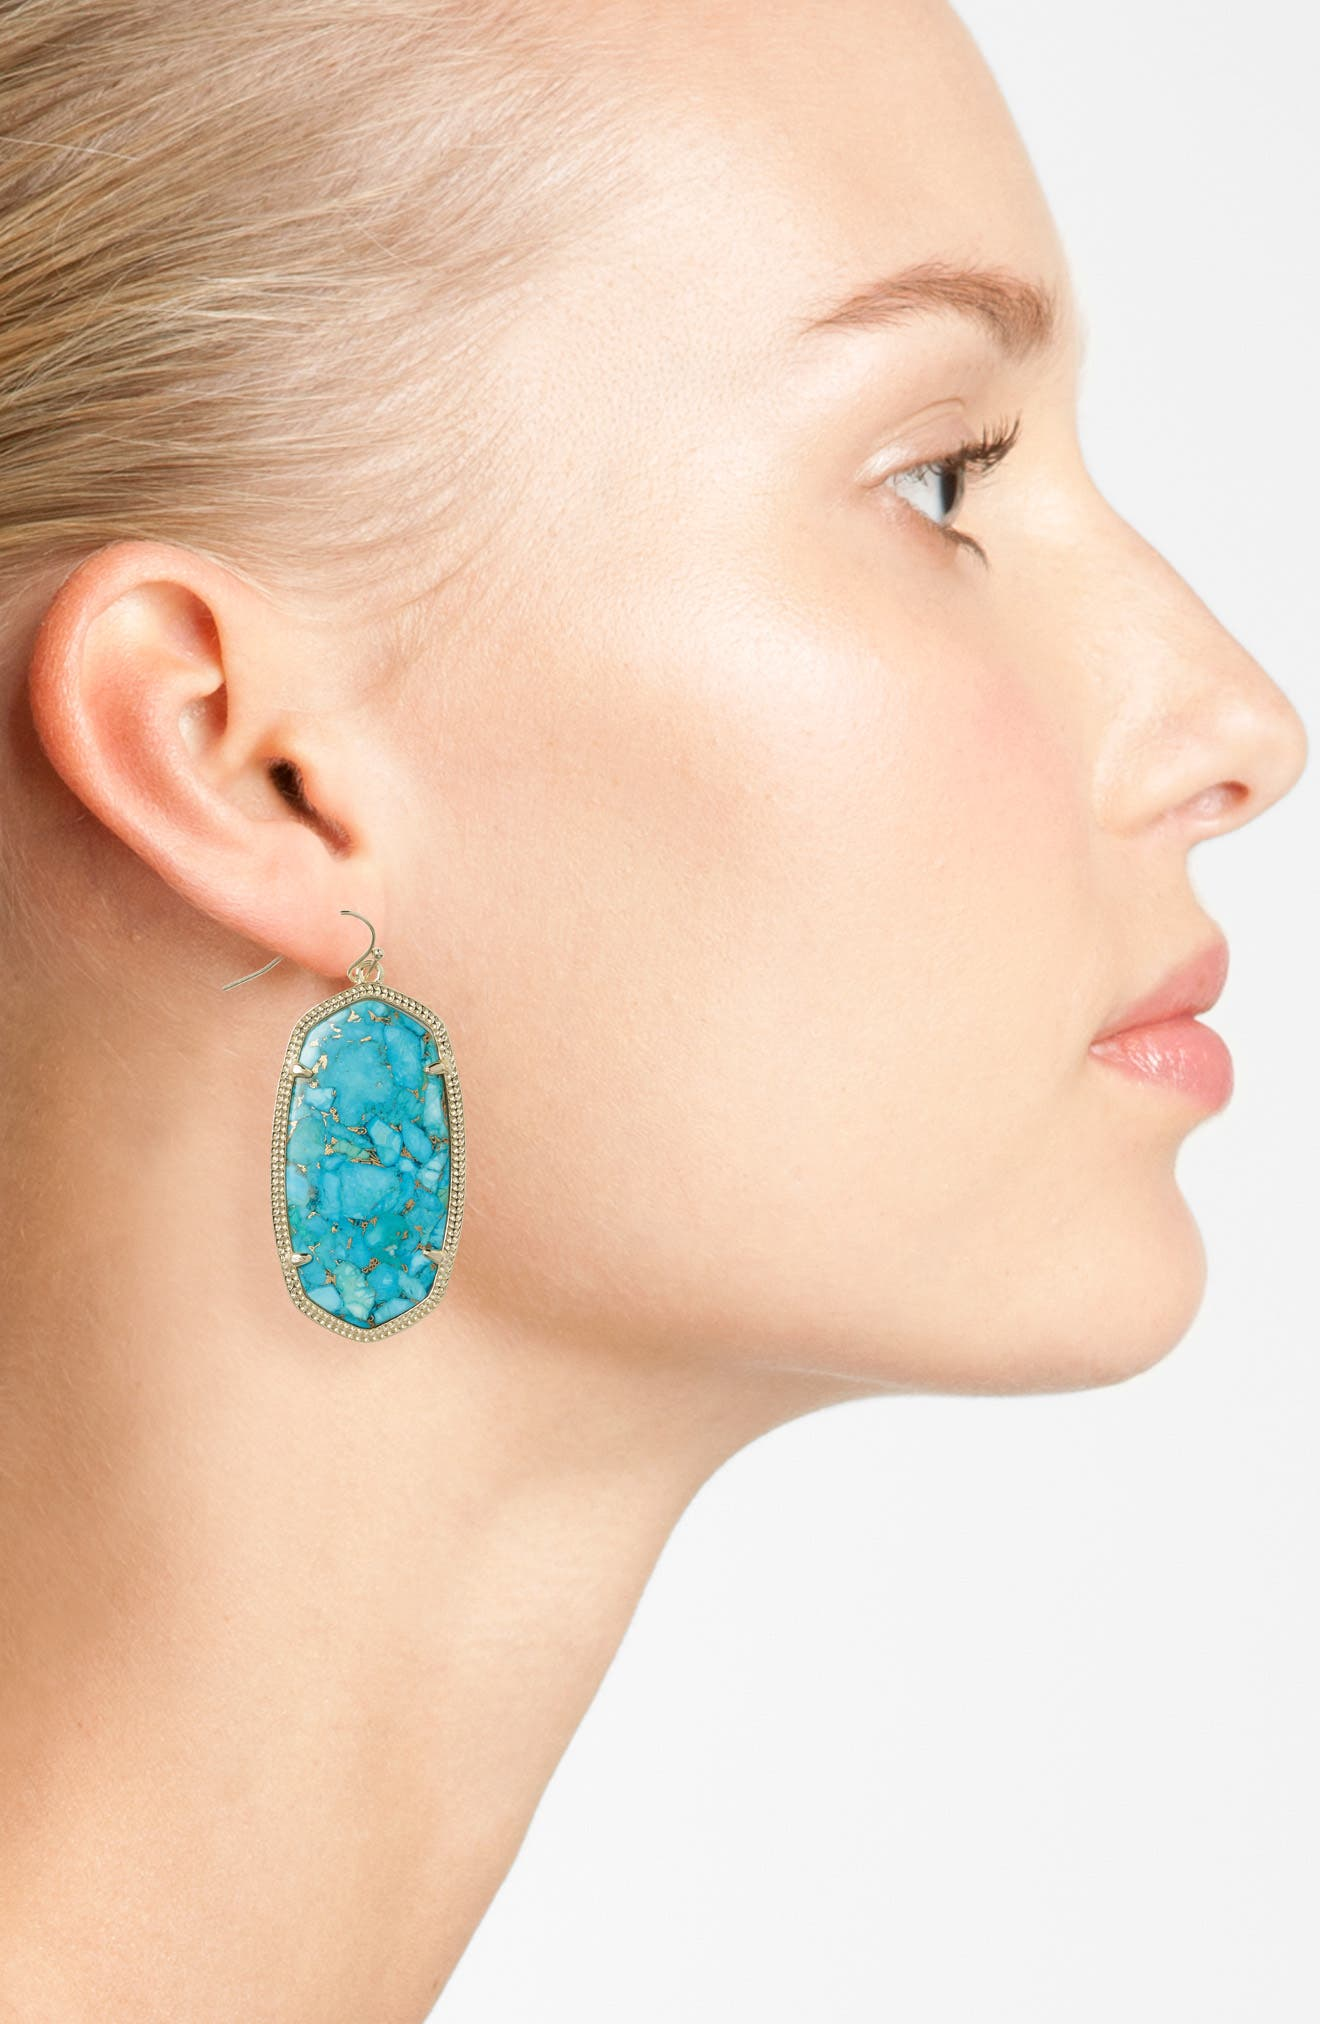 Danielle - Large Oval Statement Earrings,                             Alternate thumbnail 156, color,